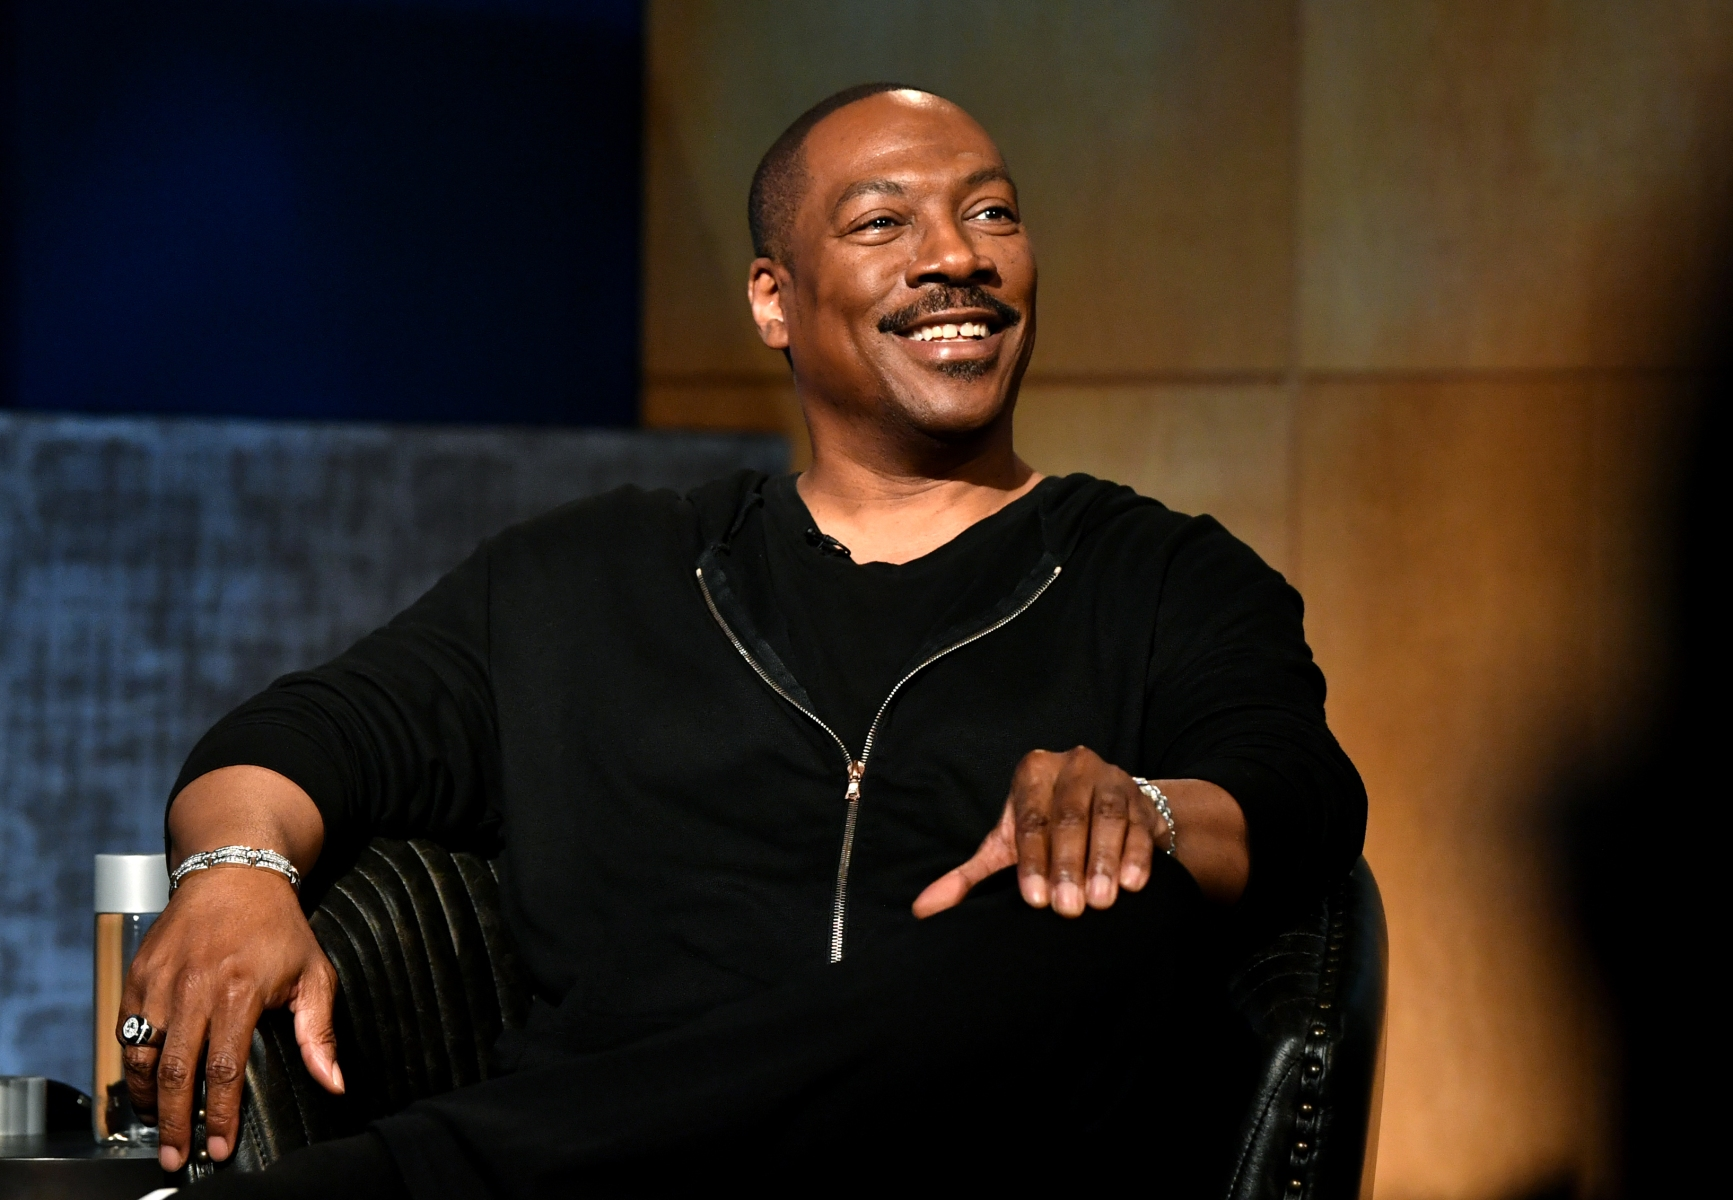 Eddie Murphy has confirmed that he'll make his return to stand-up comedy.